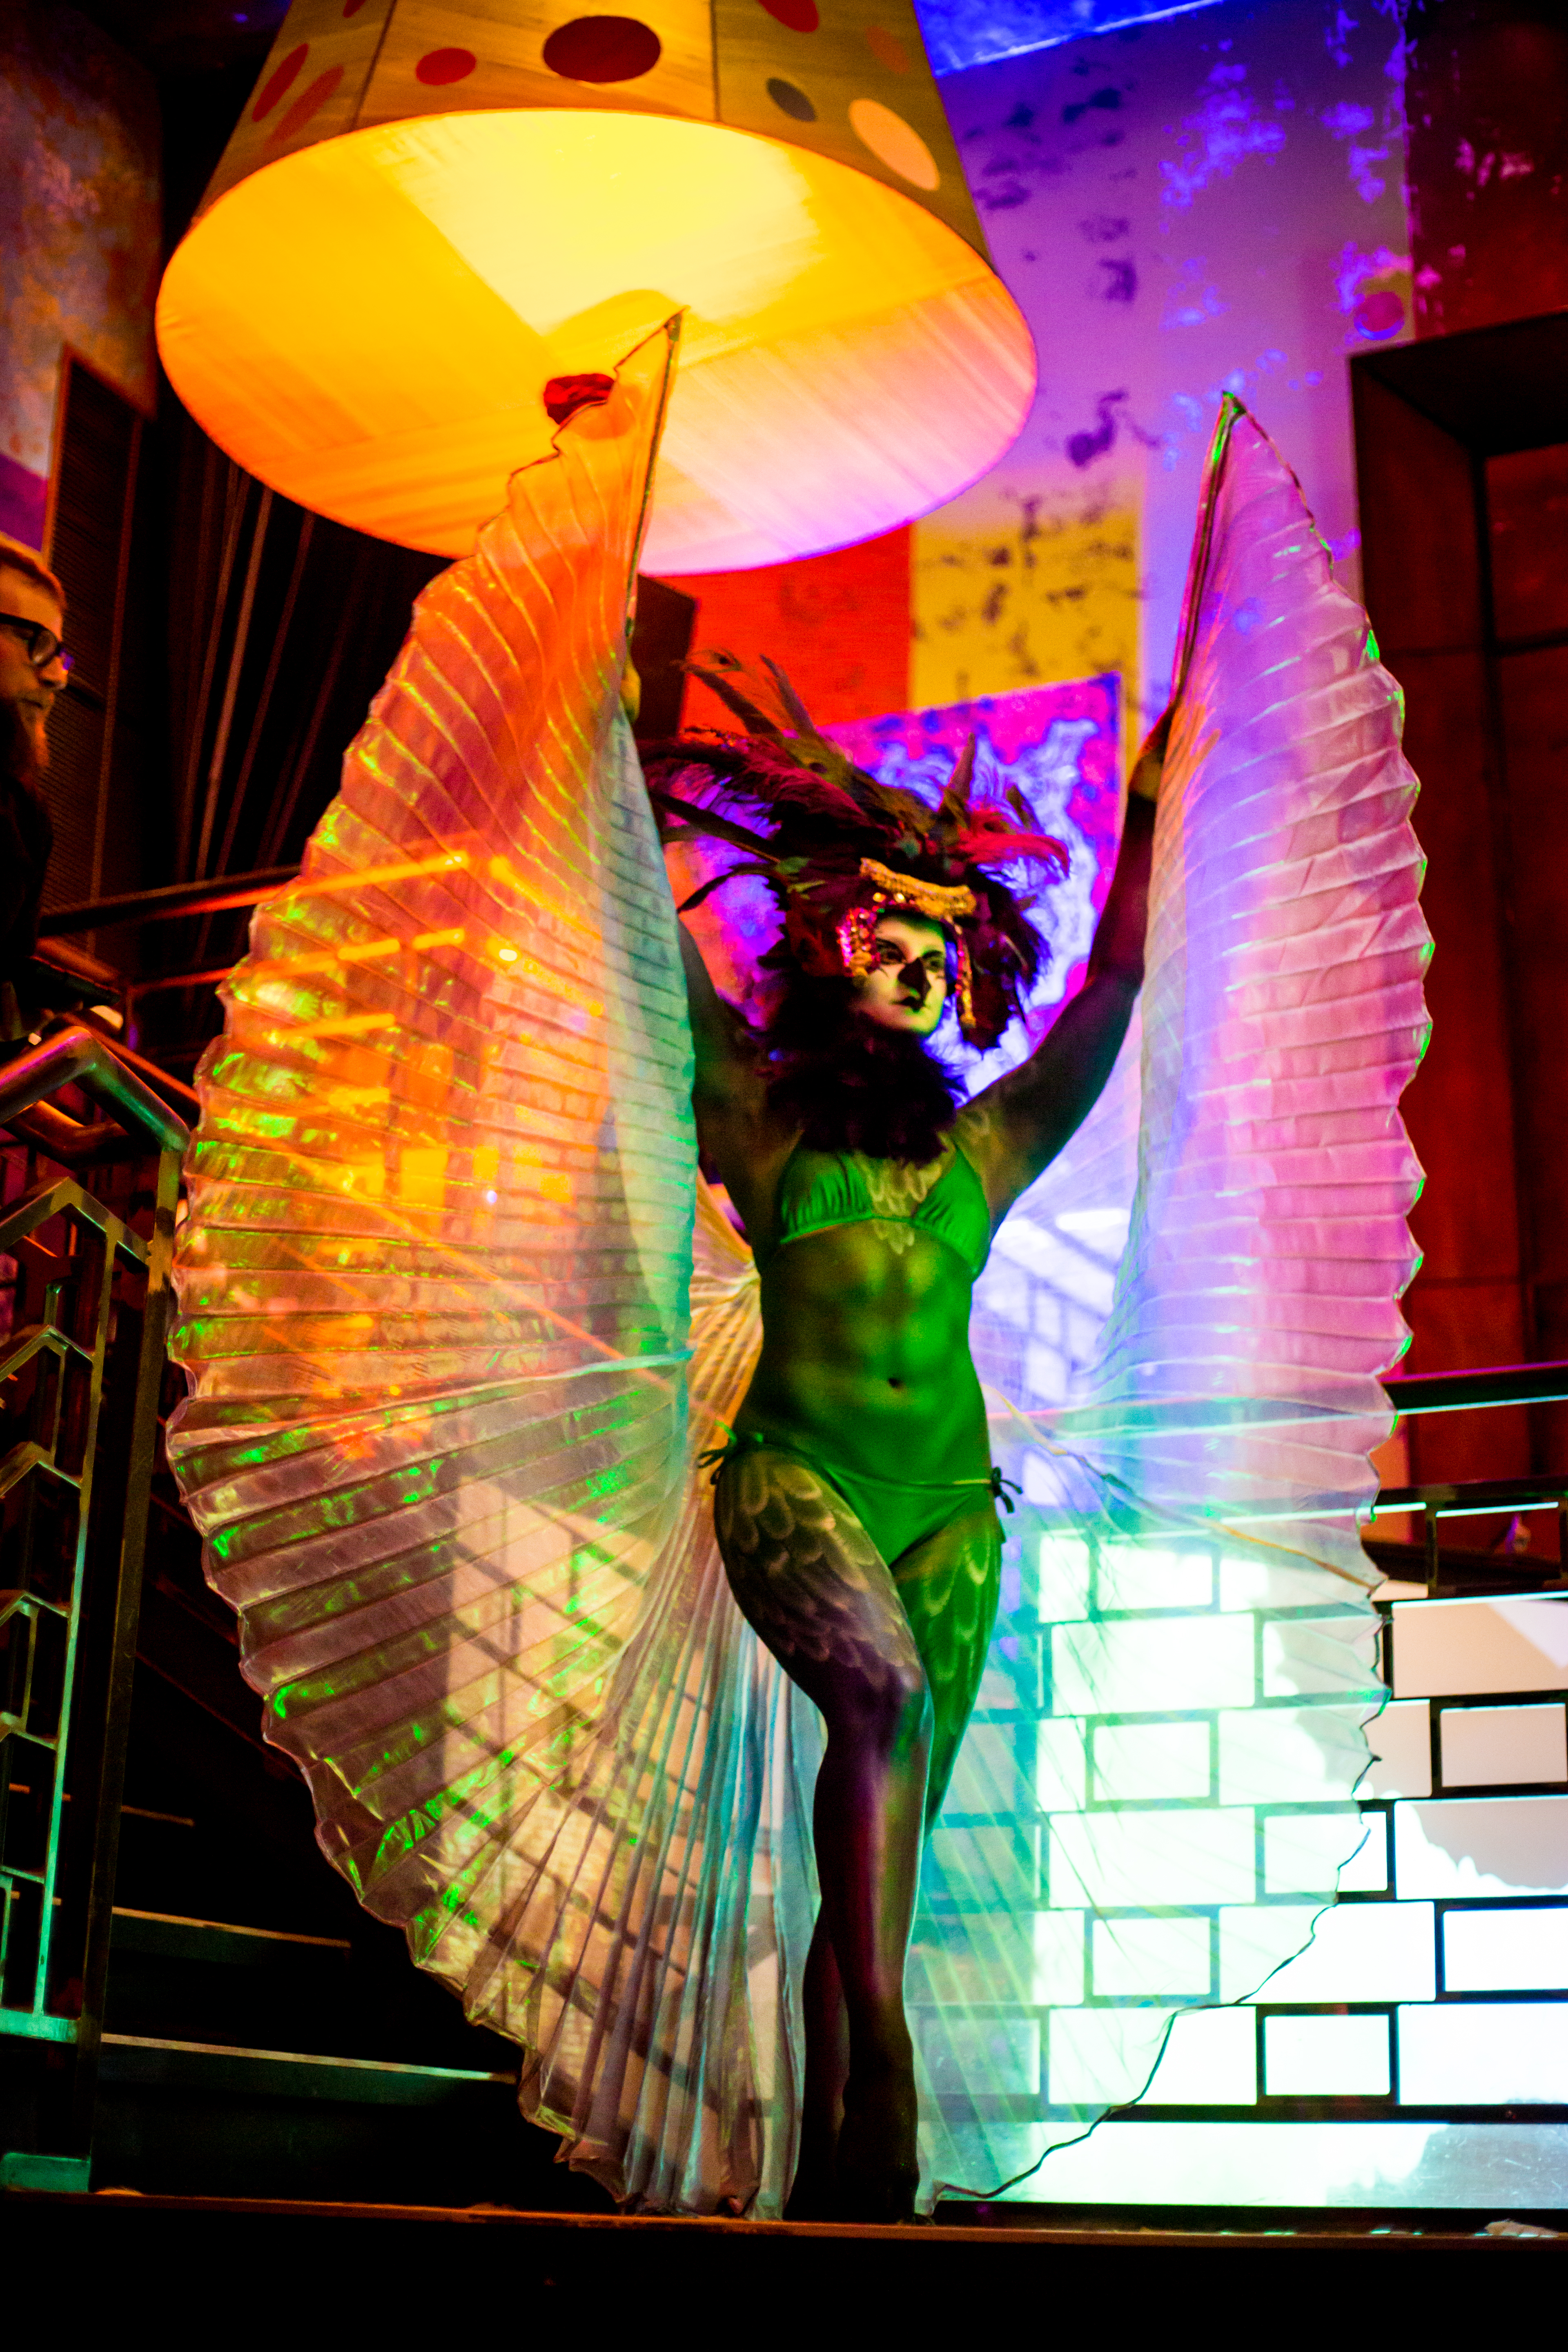 Painted Living Statue makes a dramatic entrance down the spiral stairs at Carnivale.